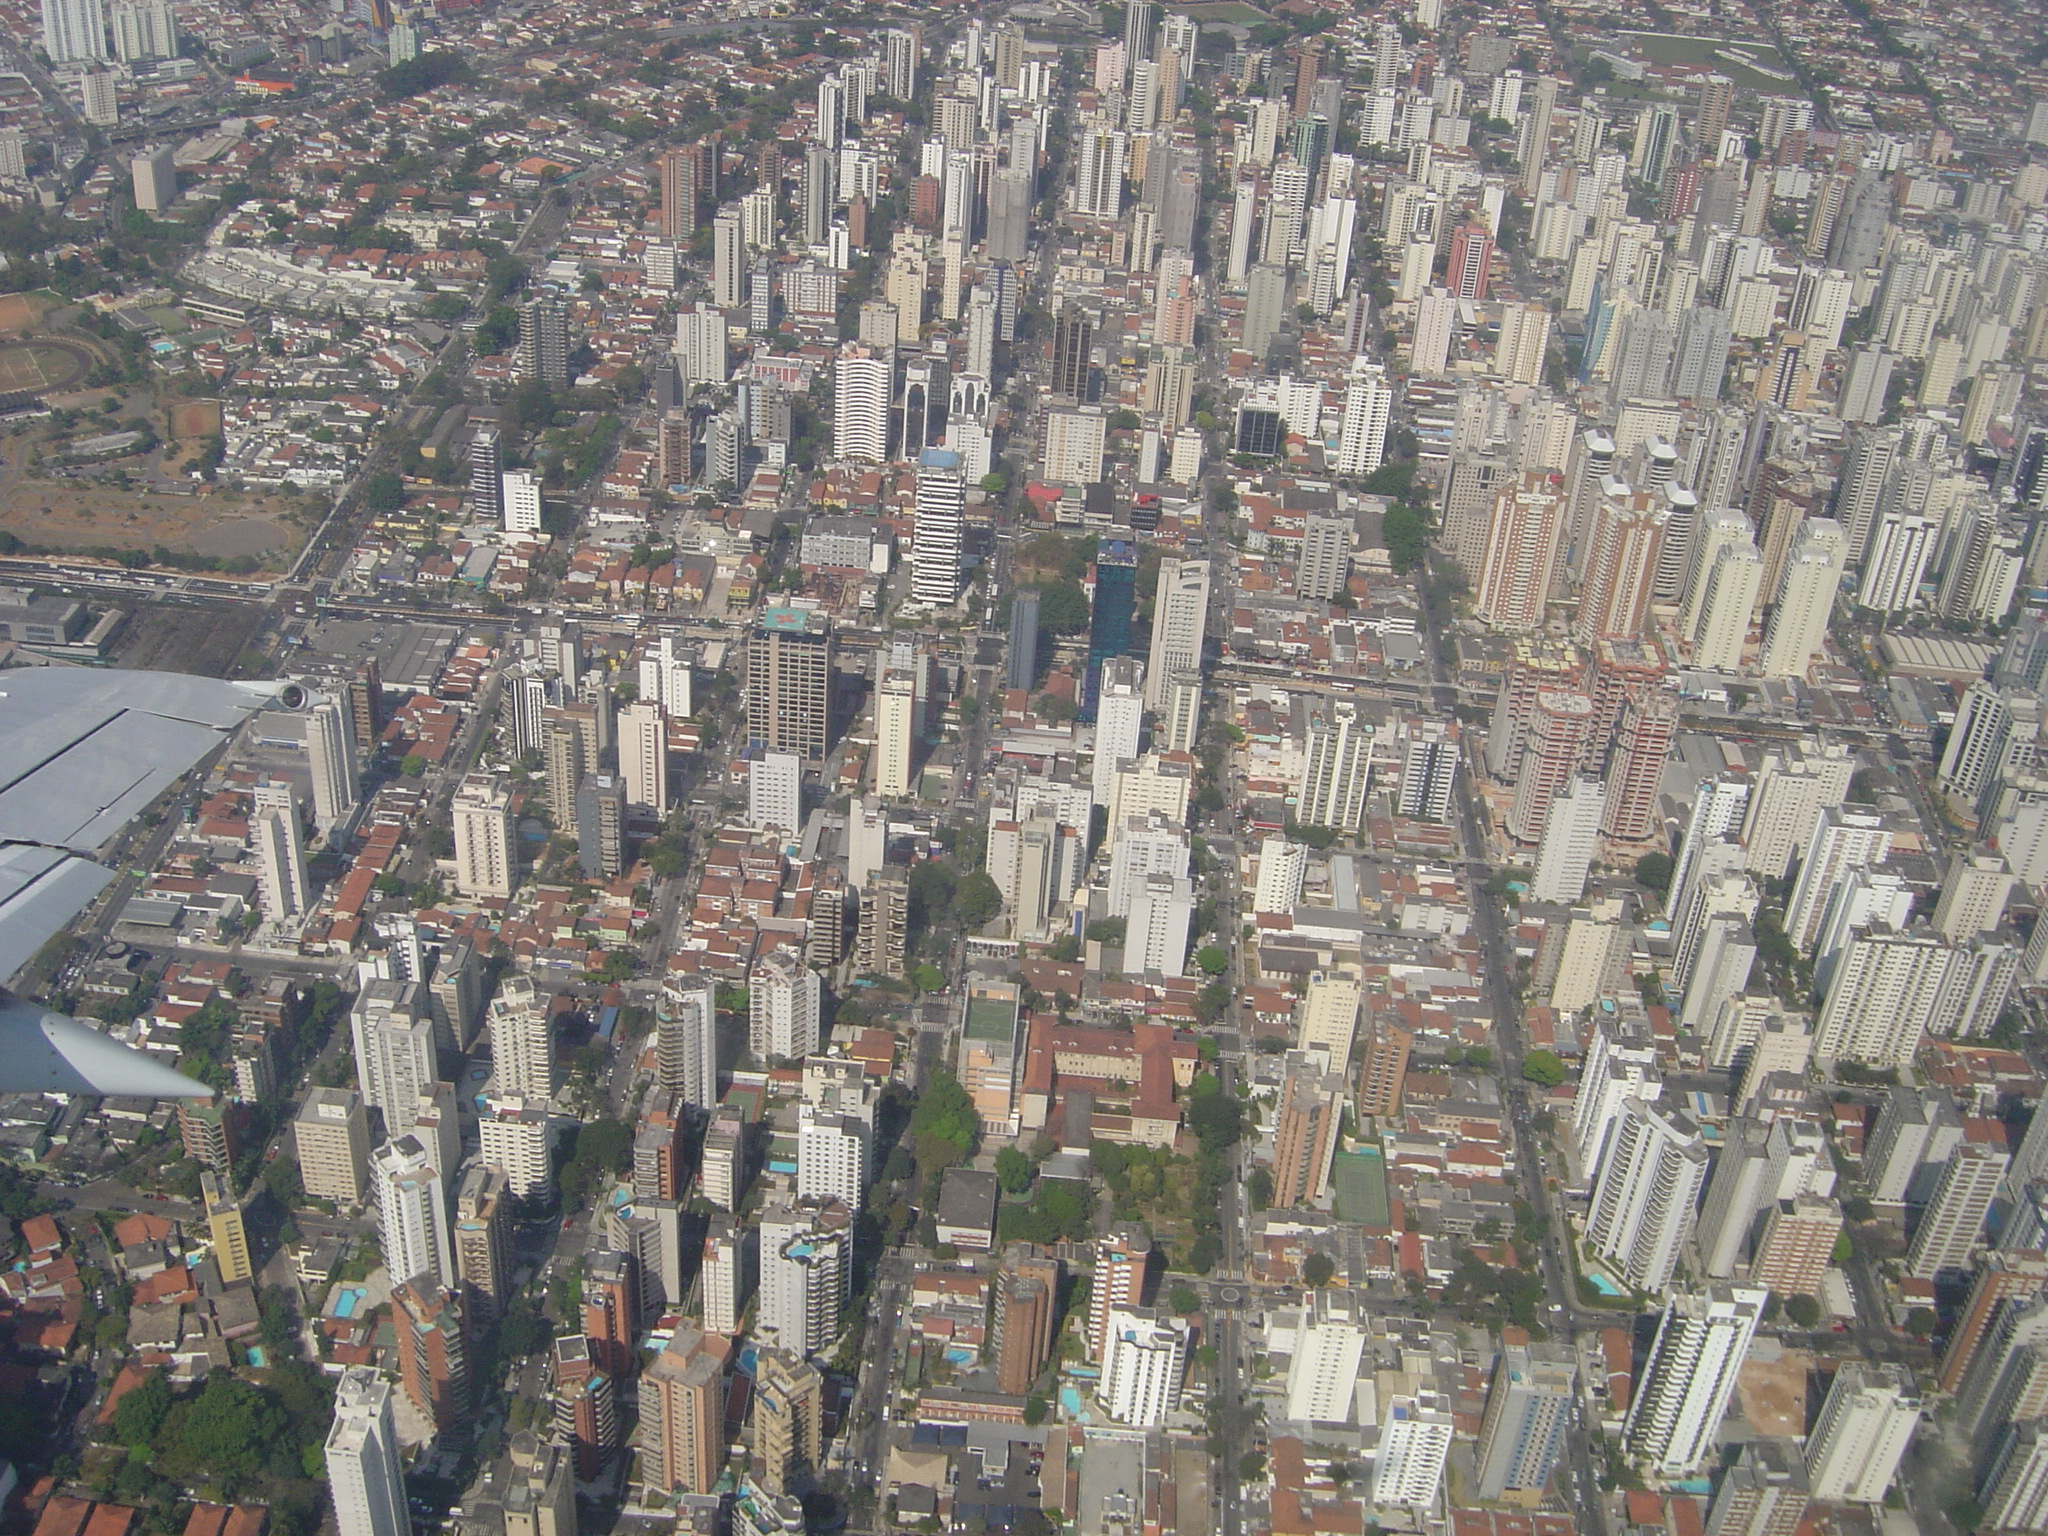 poows city metropolis skyscraper skyscrapers grid aerial view